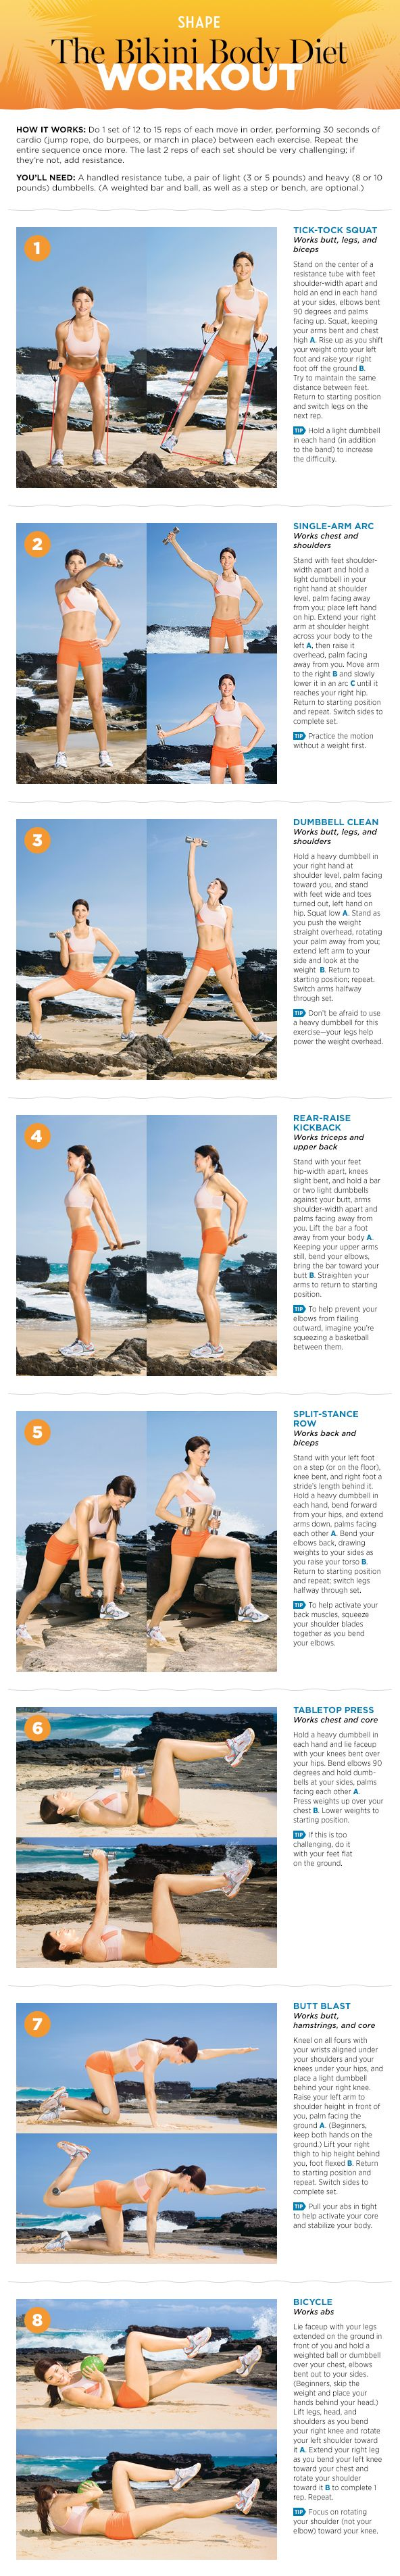 The Bikini Body Diet Workout to Lose Fat & Tone Up!-Shape Magazine